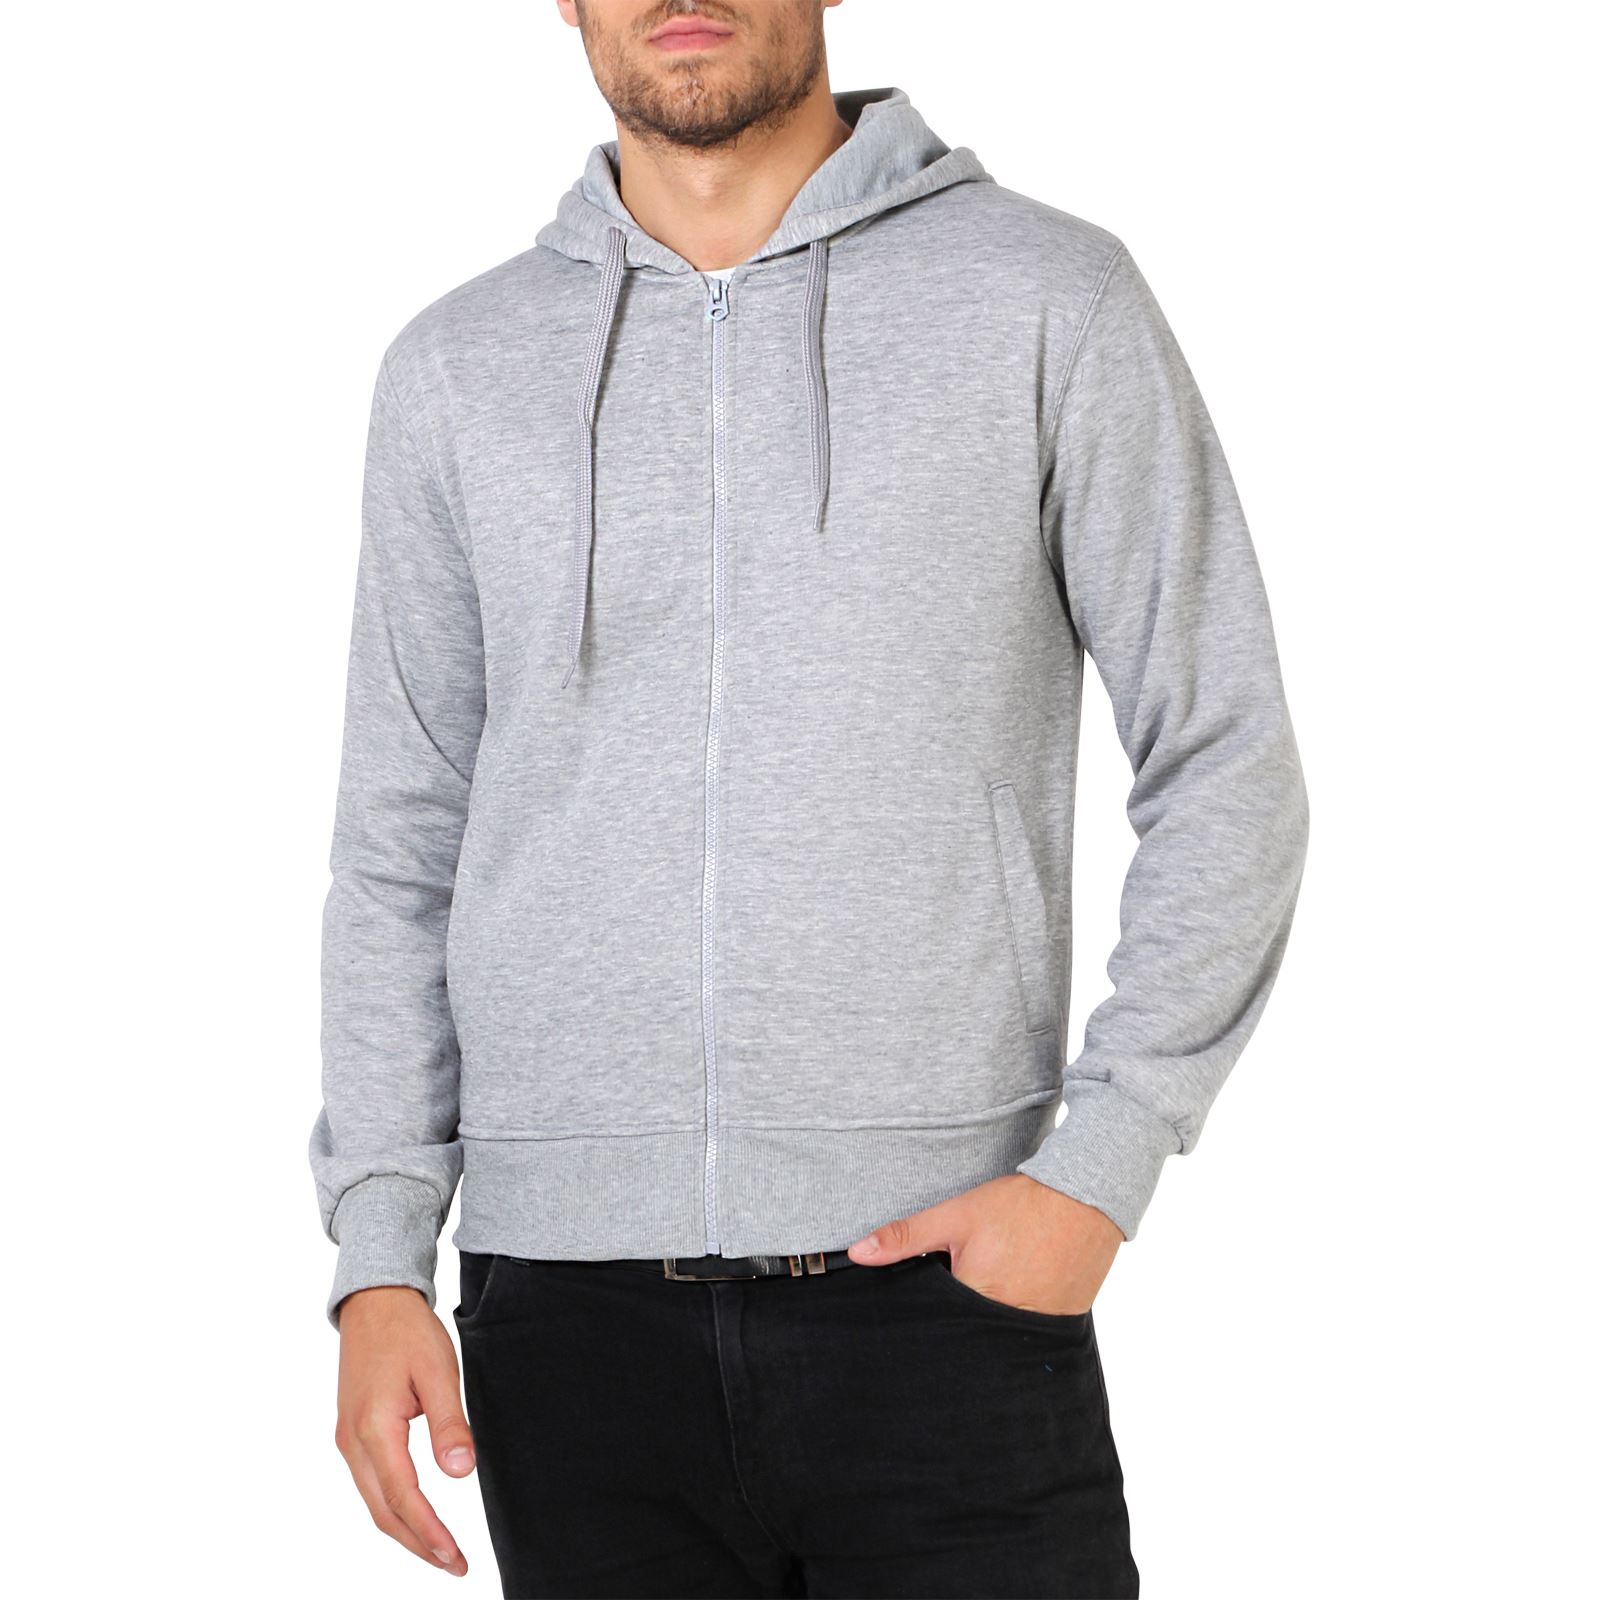 Find great deals on eBay for fleece sweatshirt. Shop with confidence.